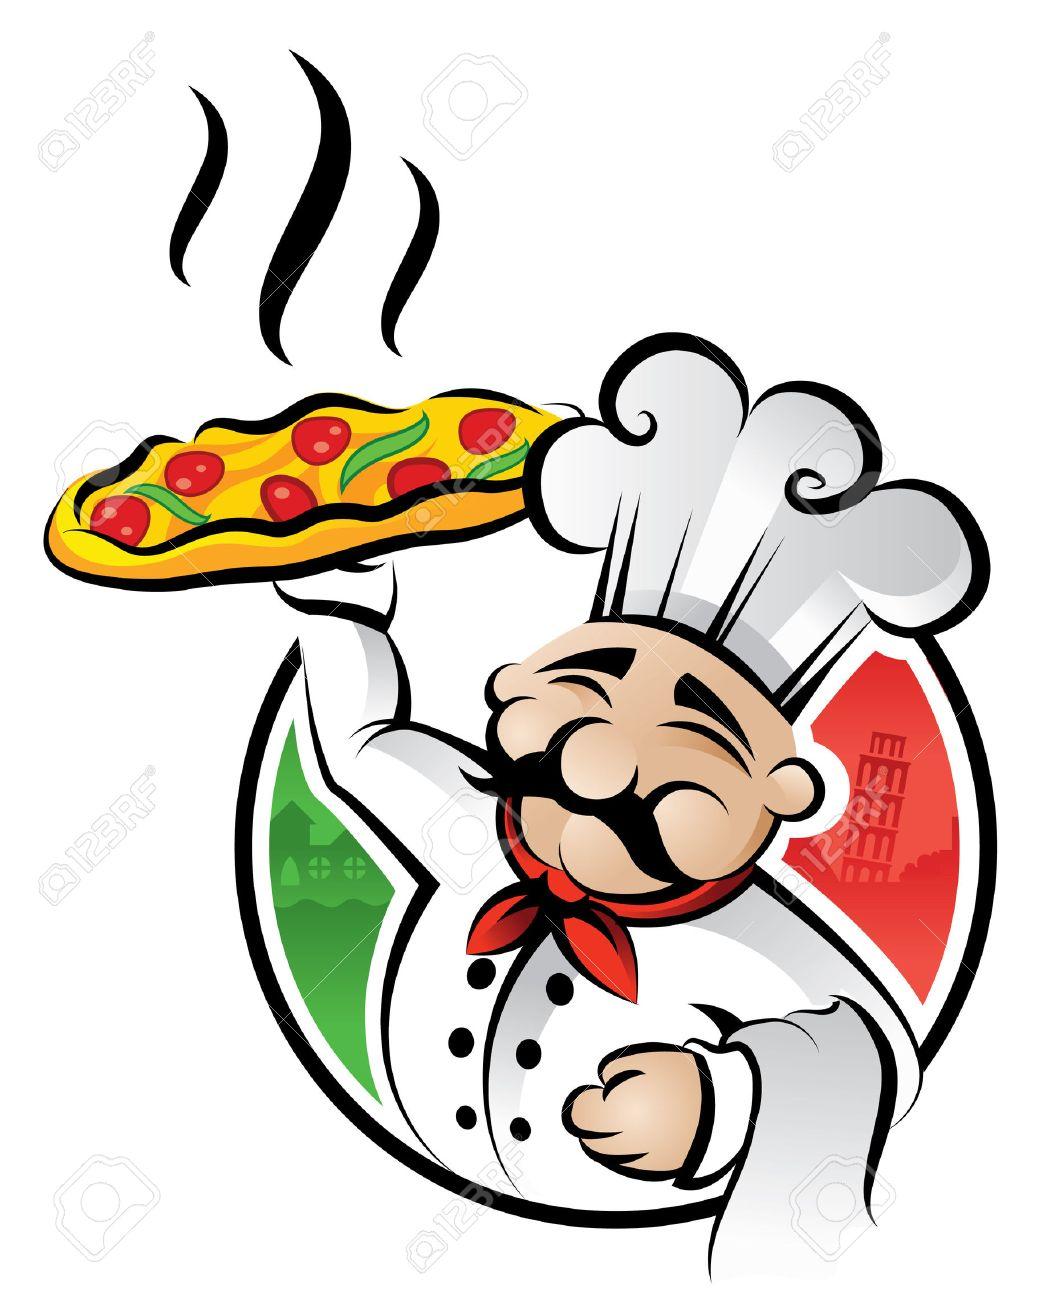 11 811 italian chef cliparts stock vector and royalty free italian rh 123rf com Italian Chef Pasta Italian Chef Joke